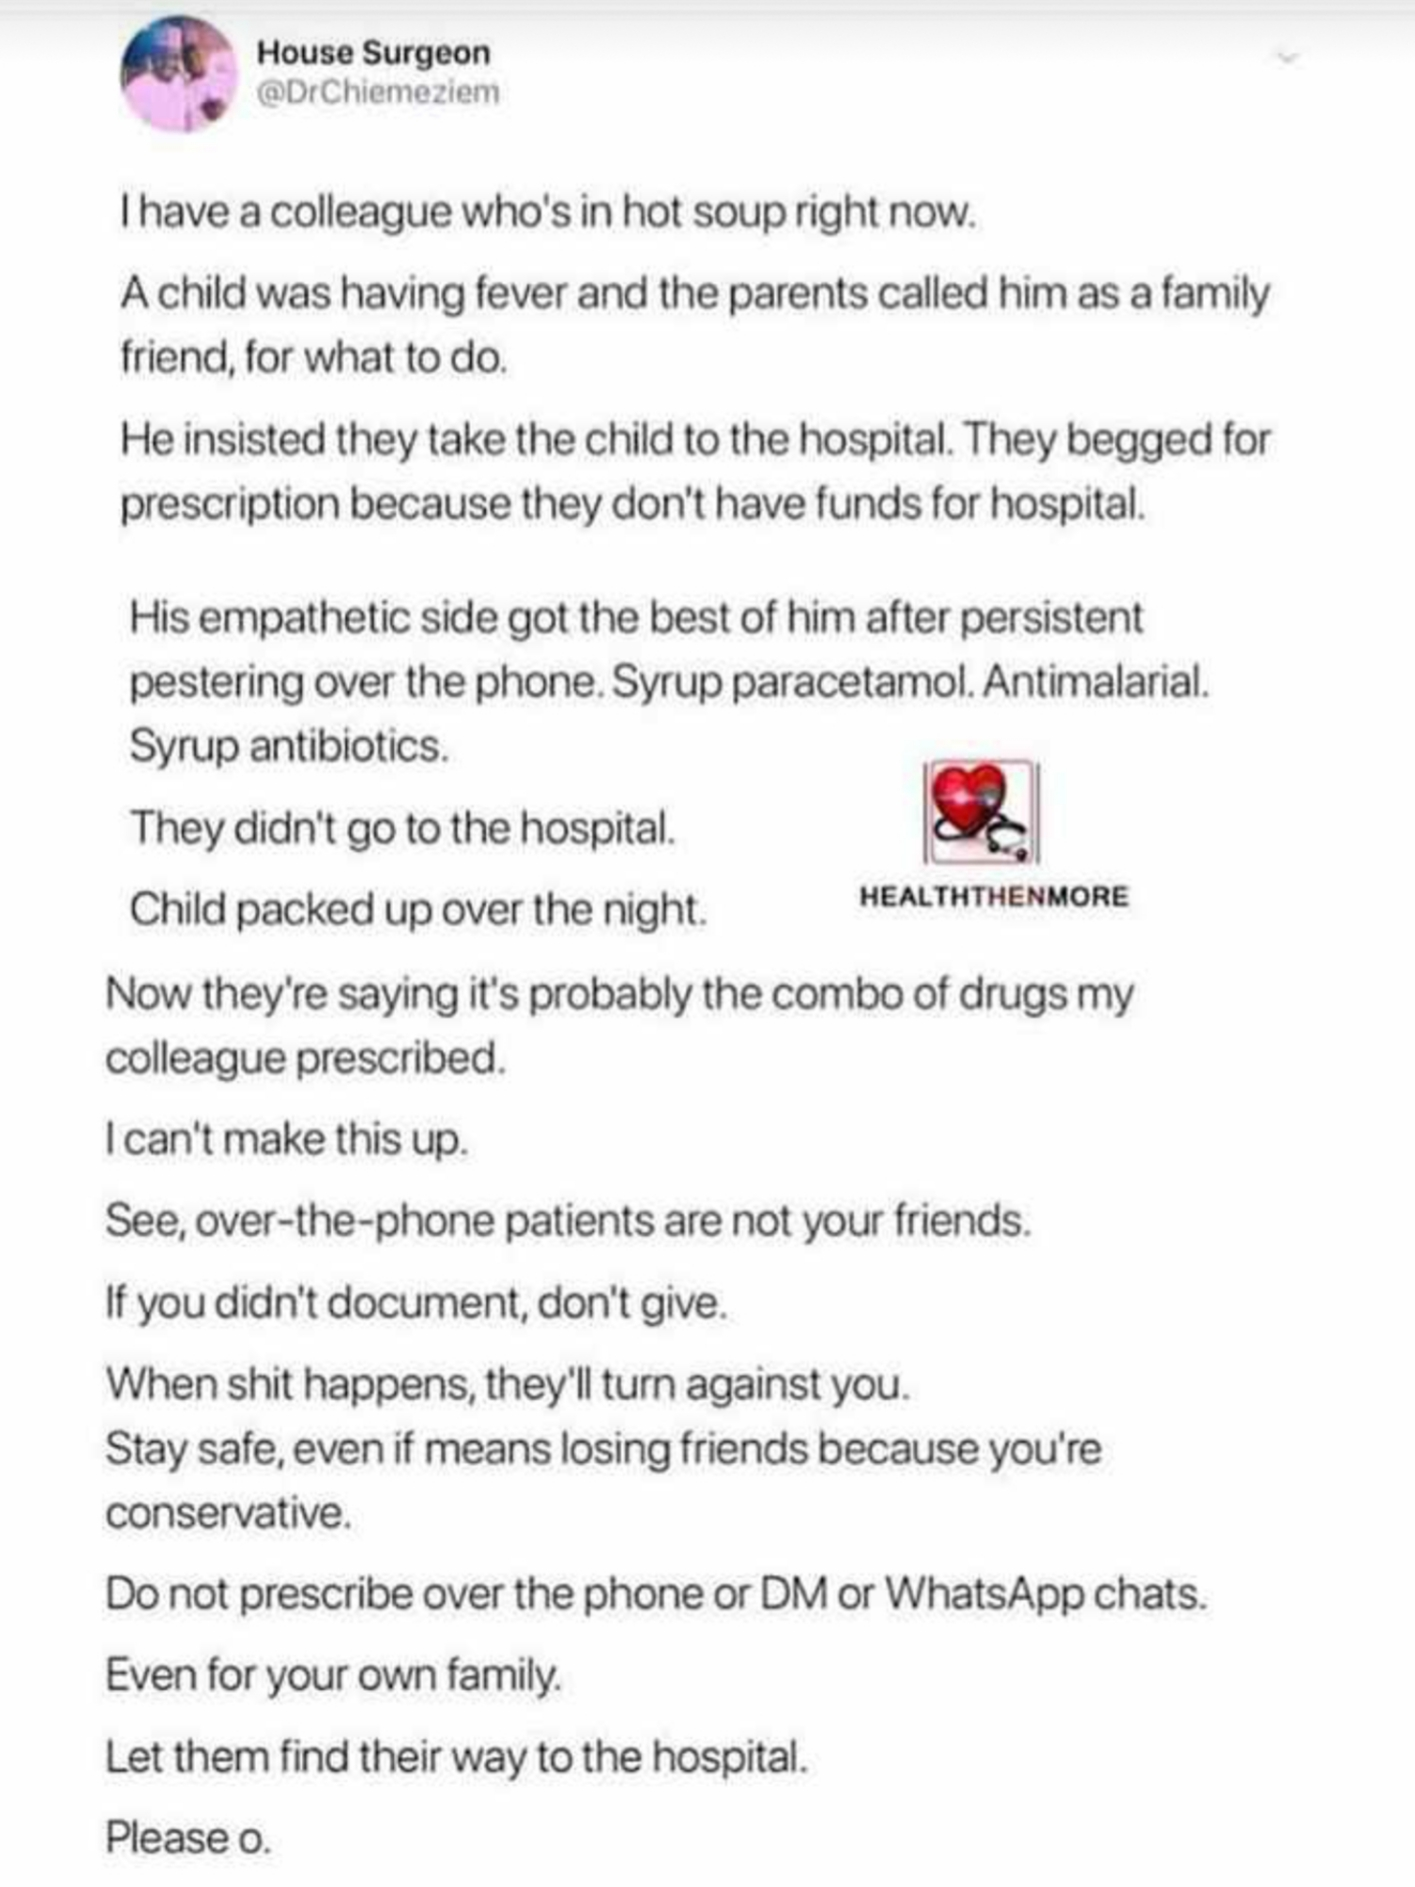 Say no to over the phone prescription